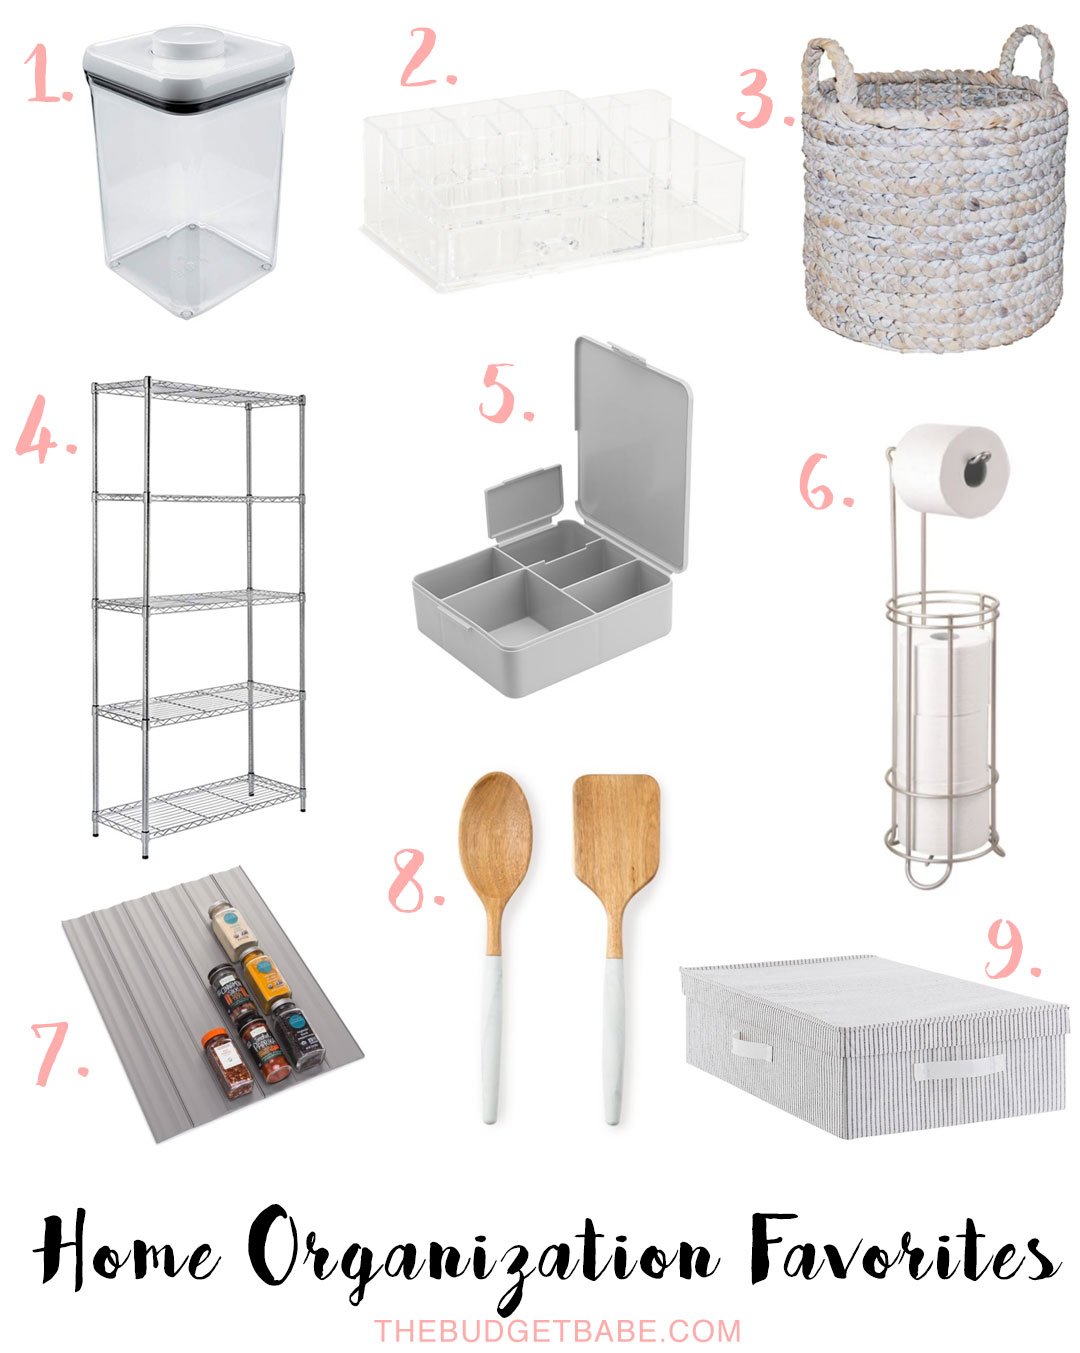 Organize on any budget with these top picks